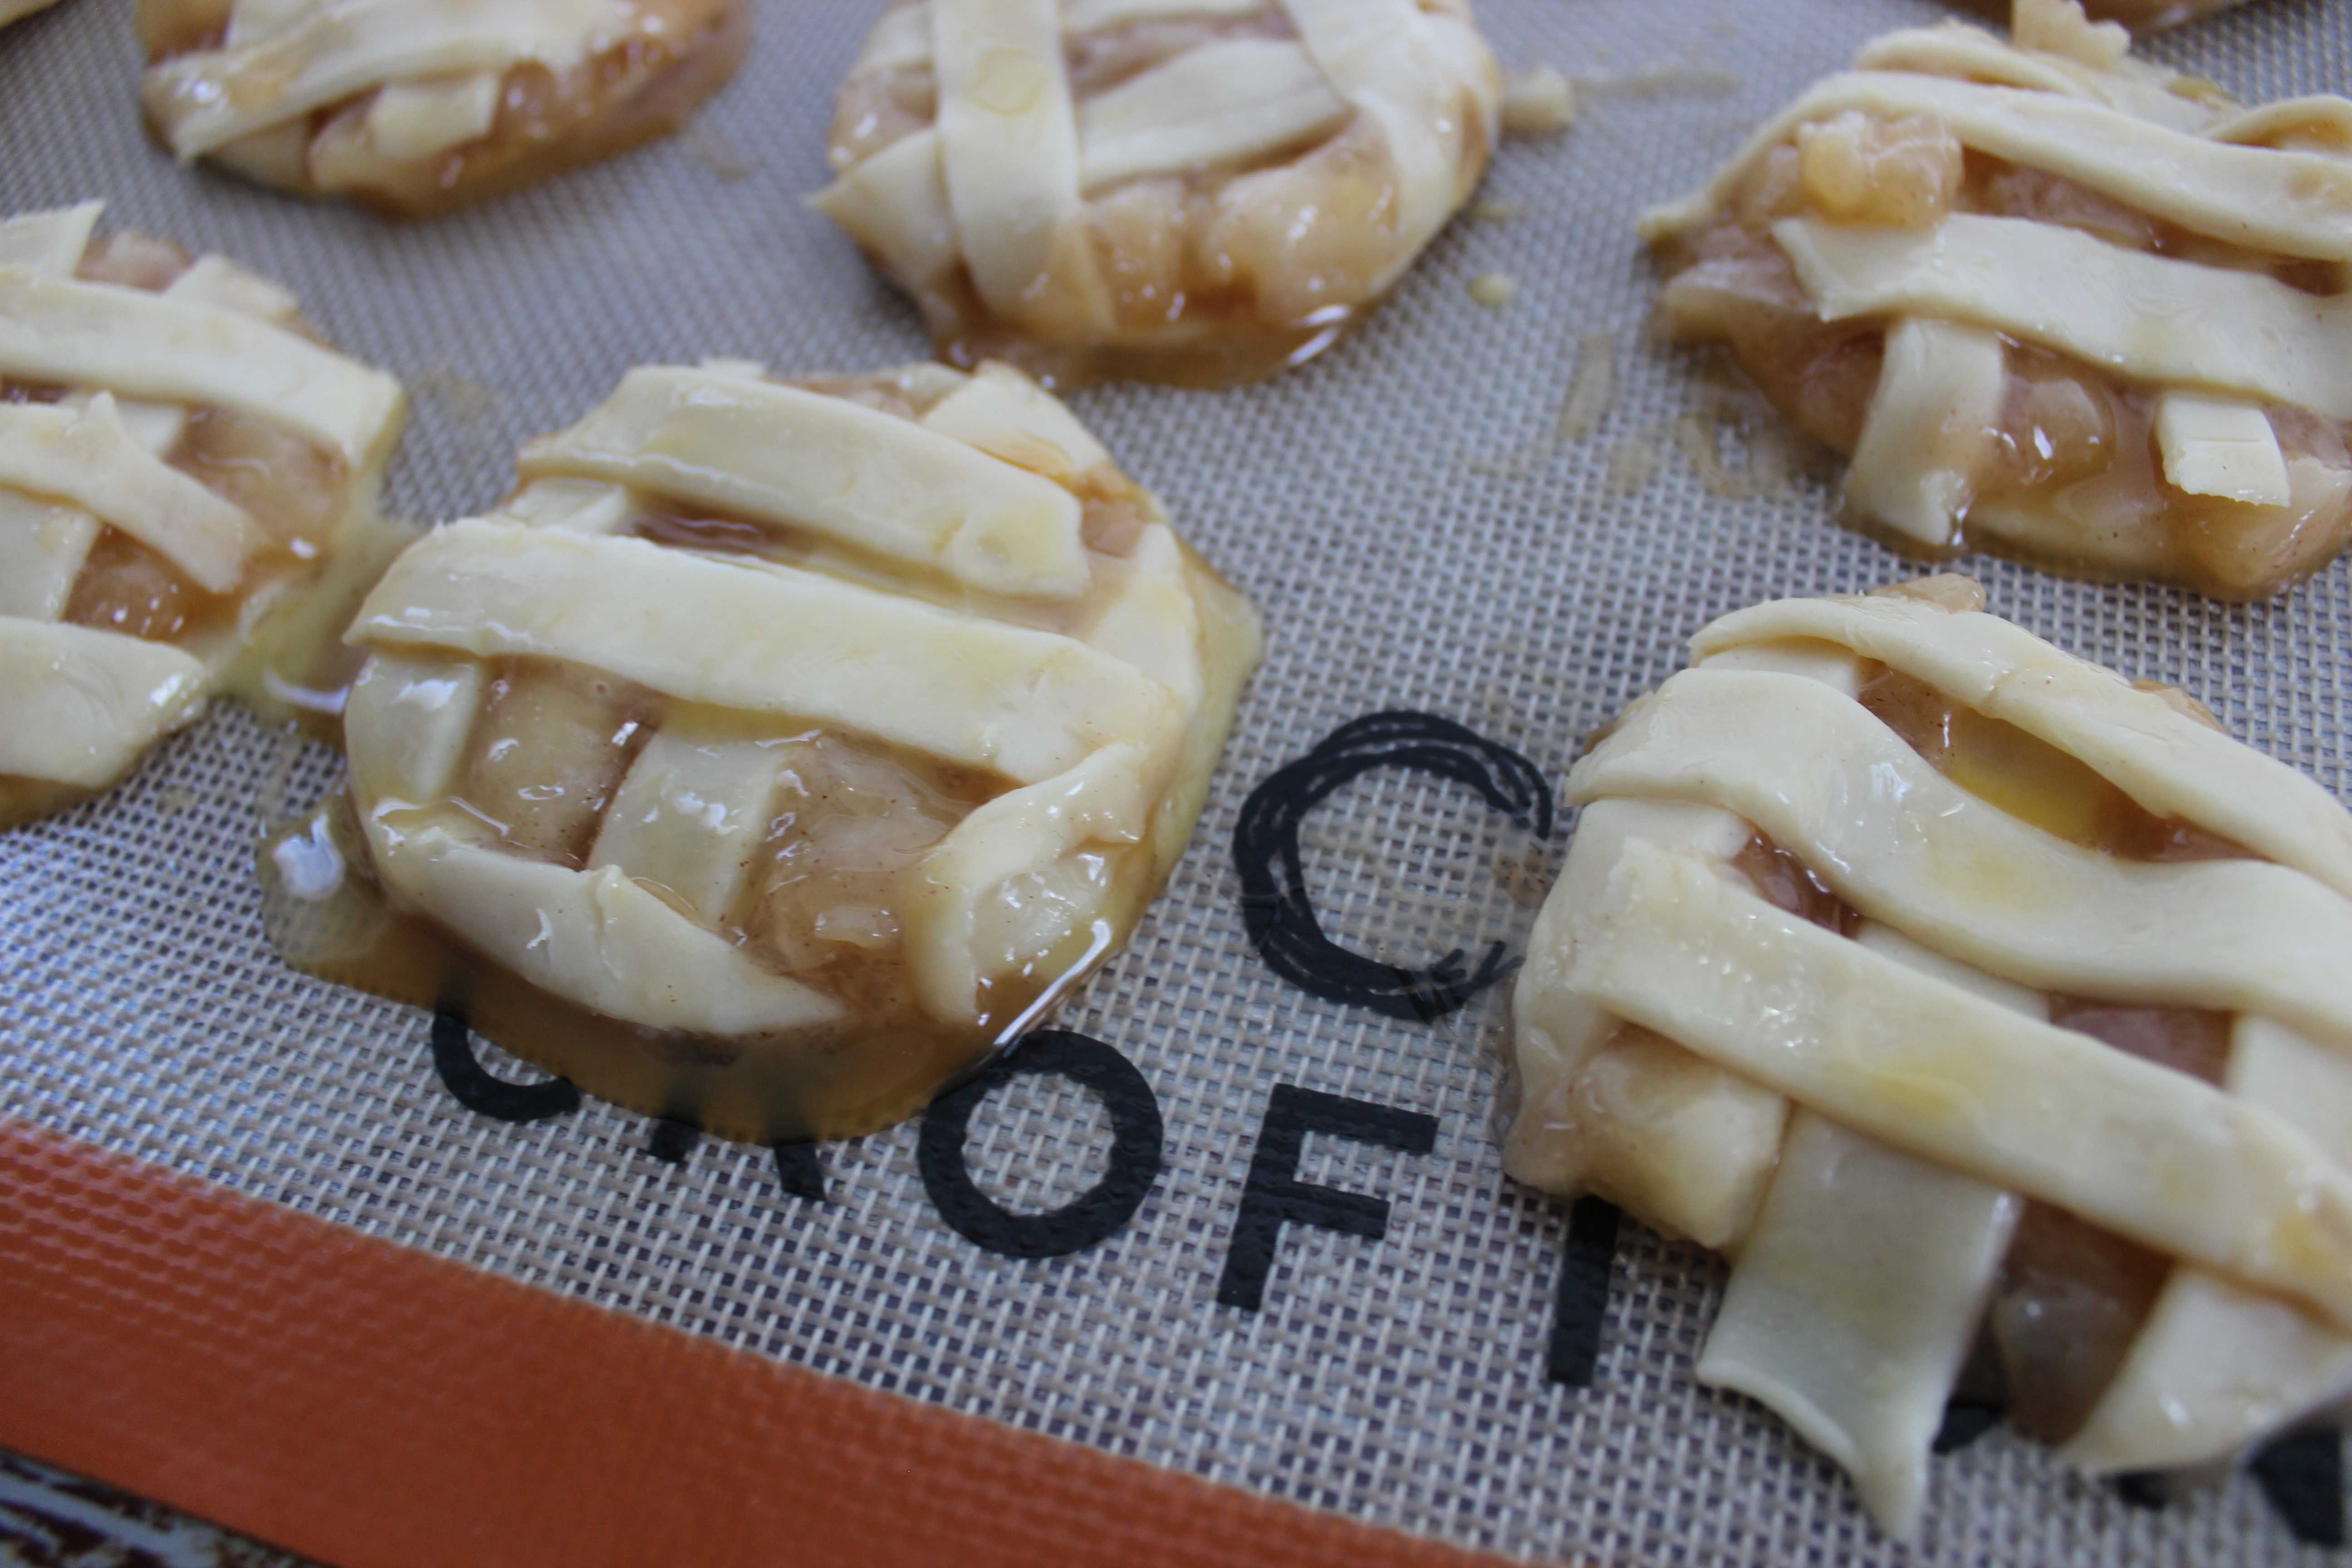 All the taste of Apple Pie in a cute little package. Plus, these have caramel! Yum!